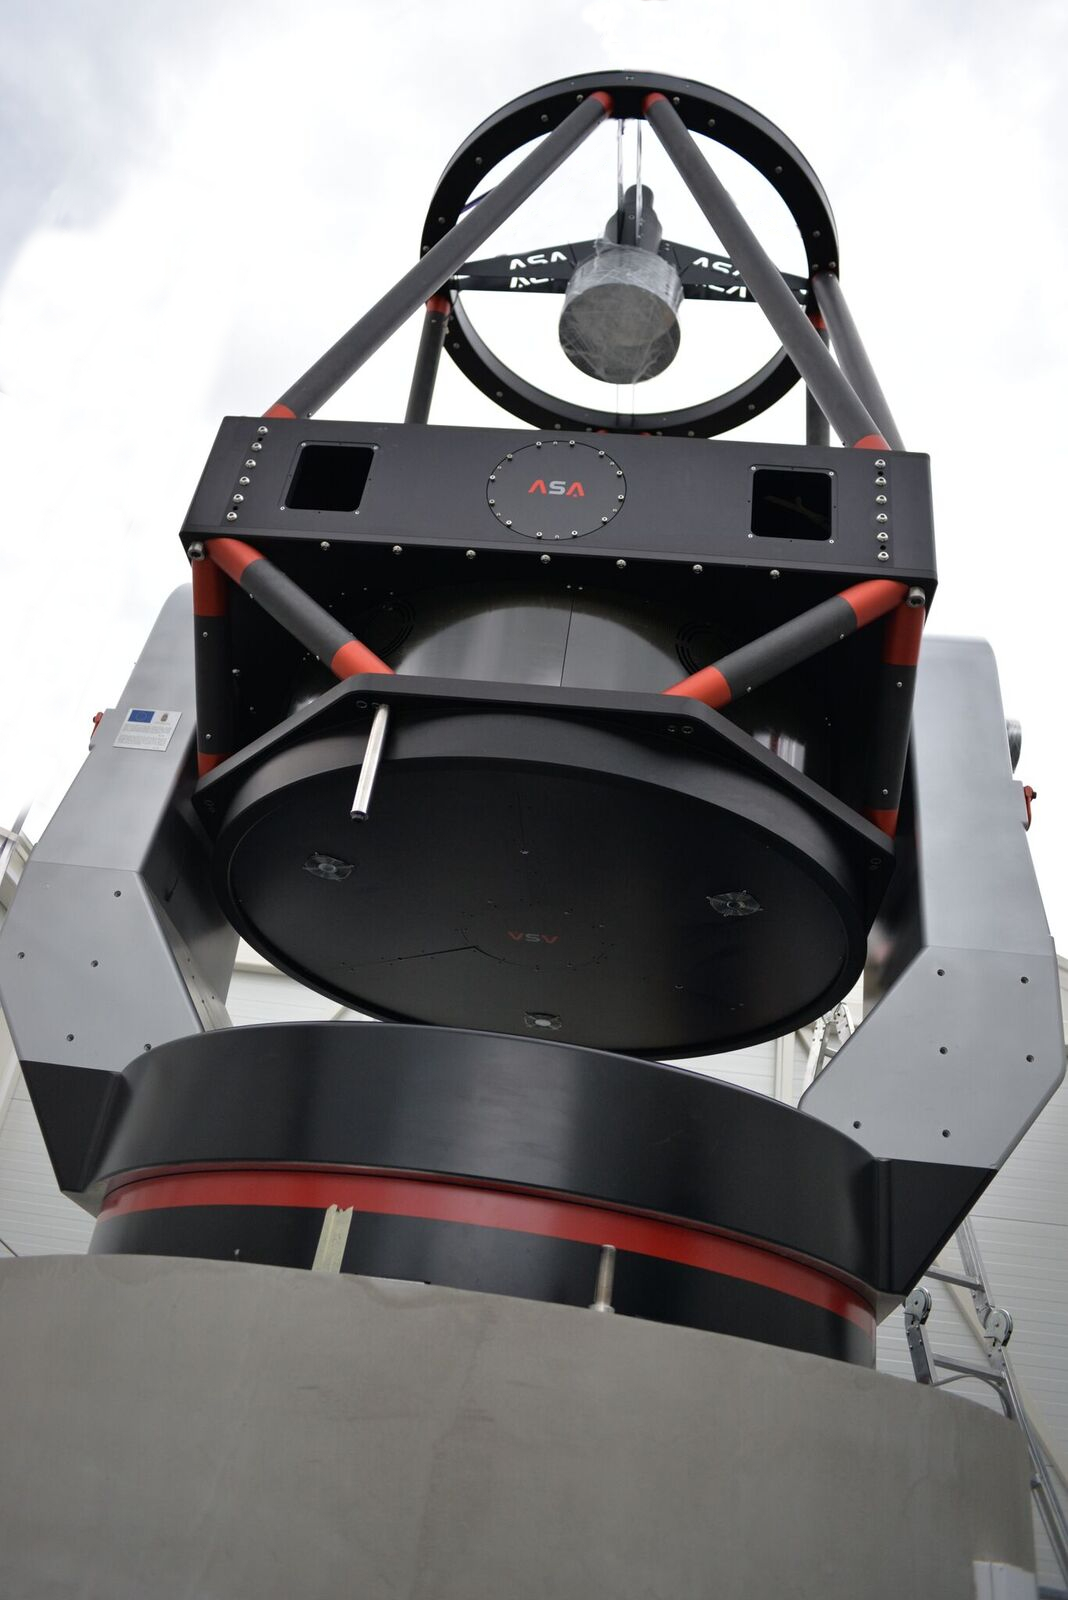 "The new big 1.4 m telescope ""Milankovic"" - AZ1400 Retchey Chretien telescope on azimuthal mount produced by ASA"